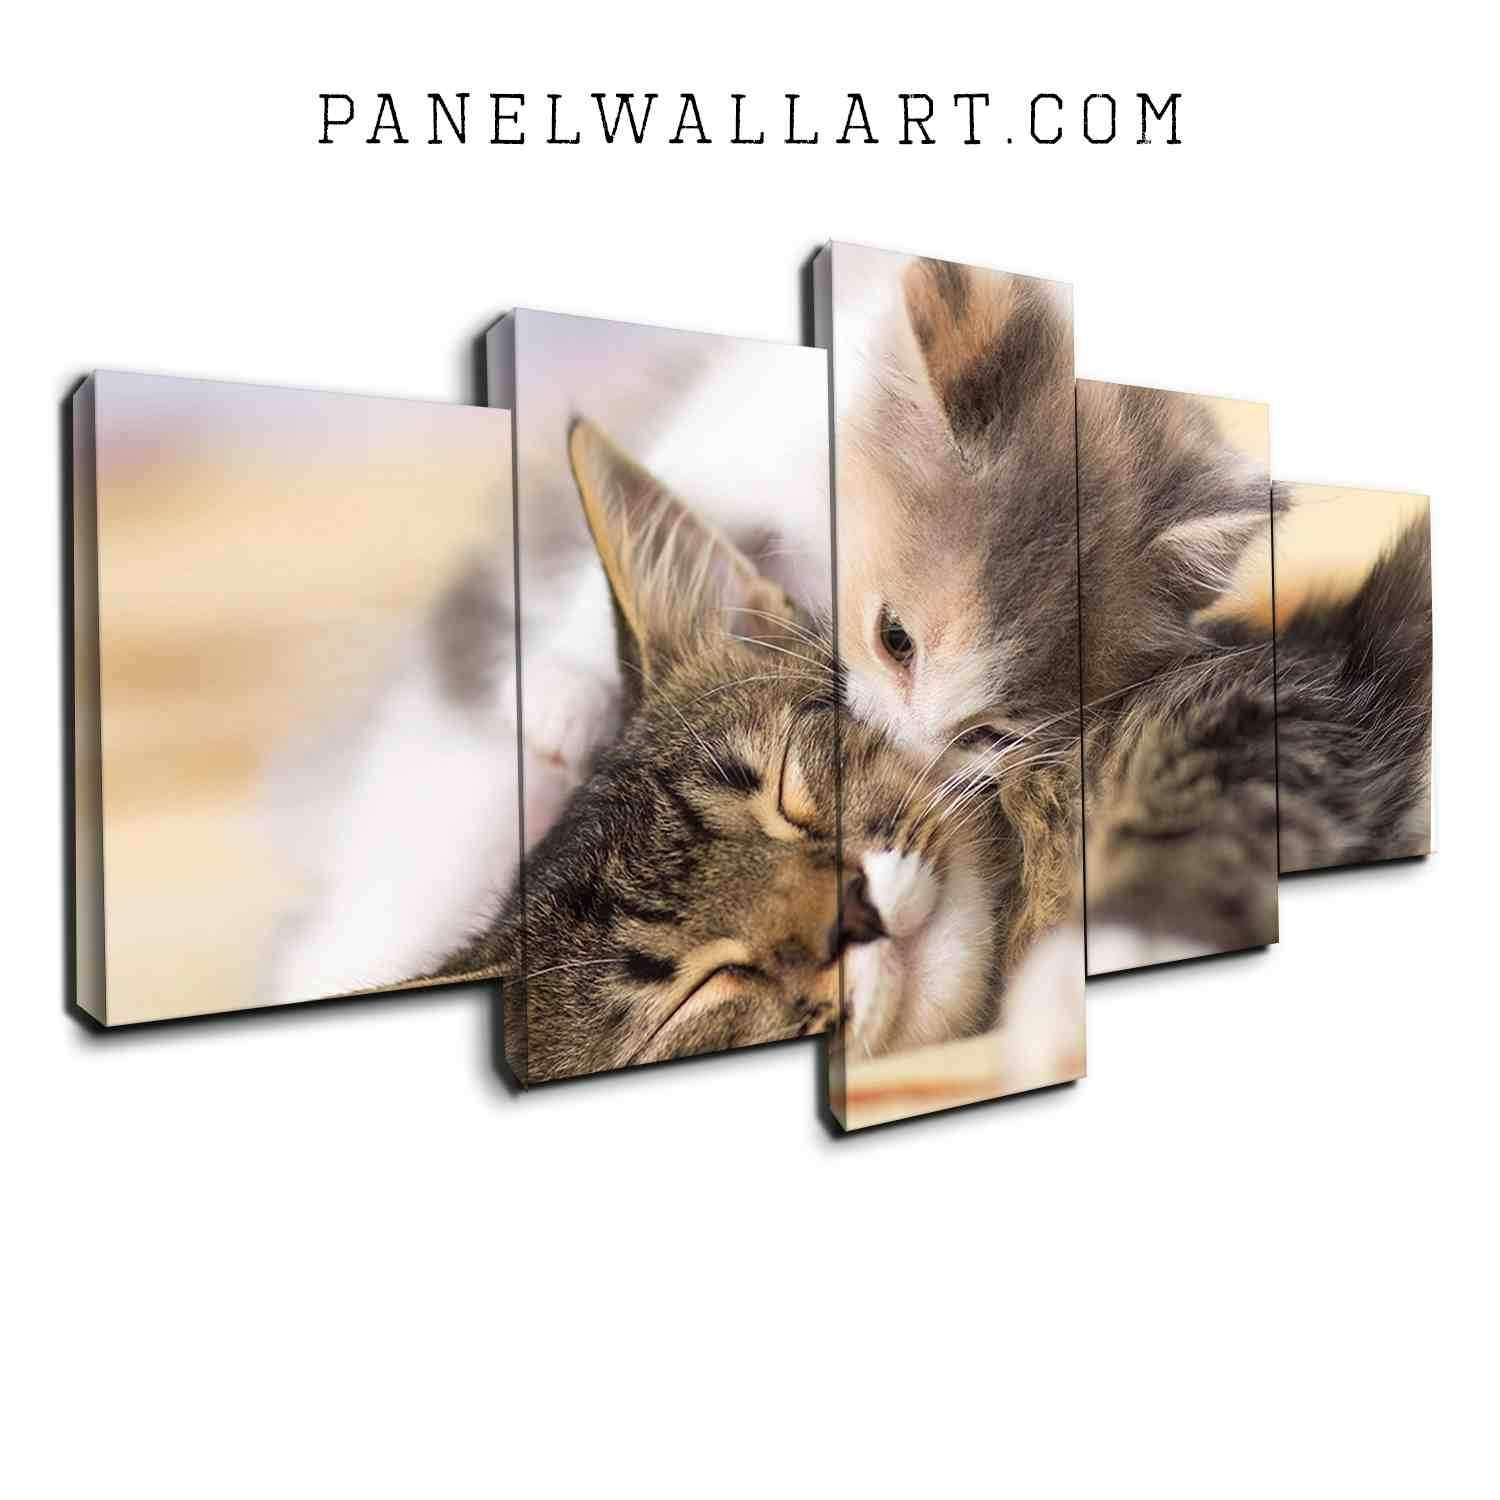 5 Panel Canvas Wall Art | Kissing Kitten On Bed | Panelwallart in Cat Canvas Wall Art (Image 2 of 20)